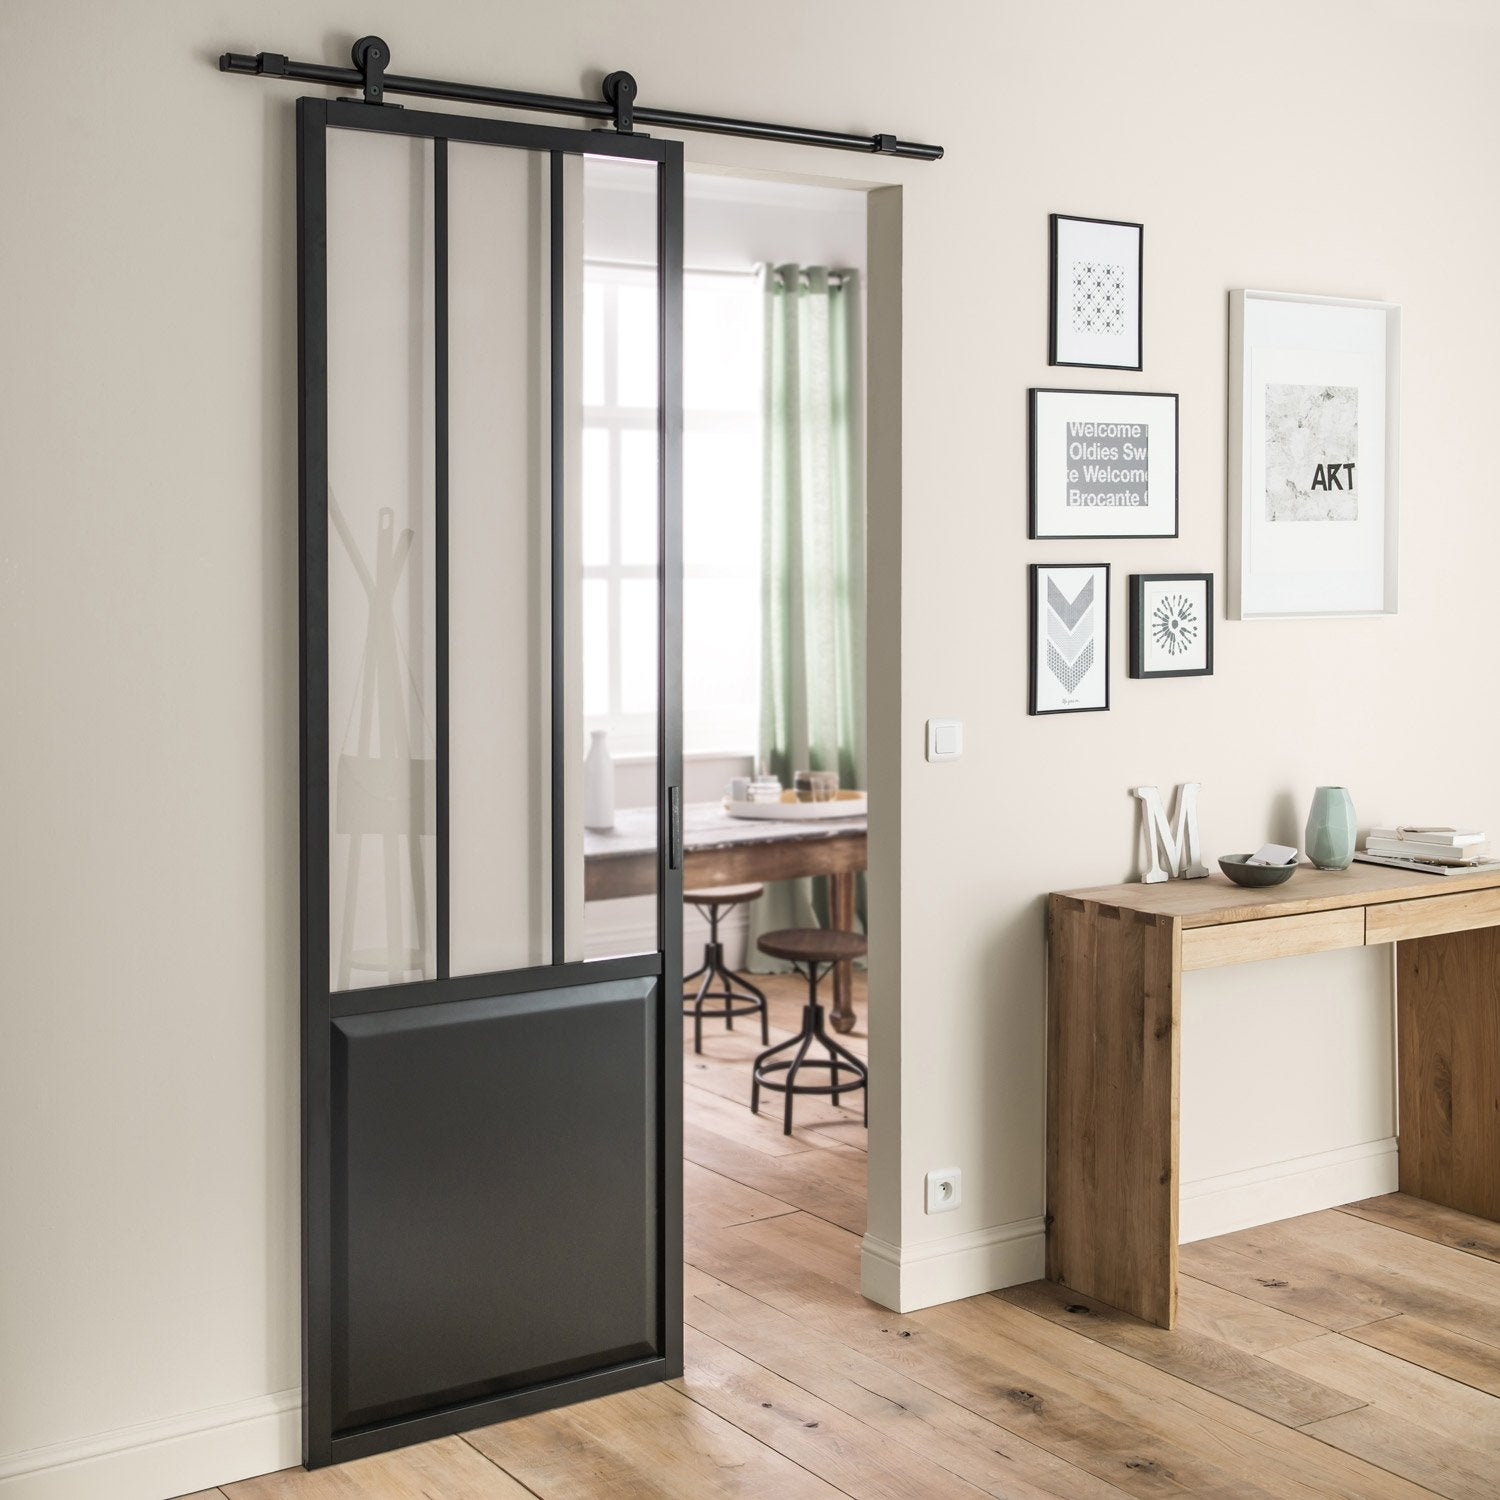 Ensemble porte coulissante atelier mdf rev tu avec le rail for Verriere atelier coulissante